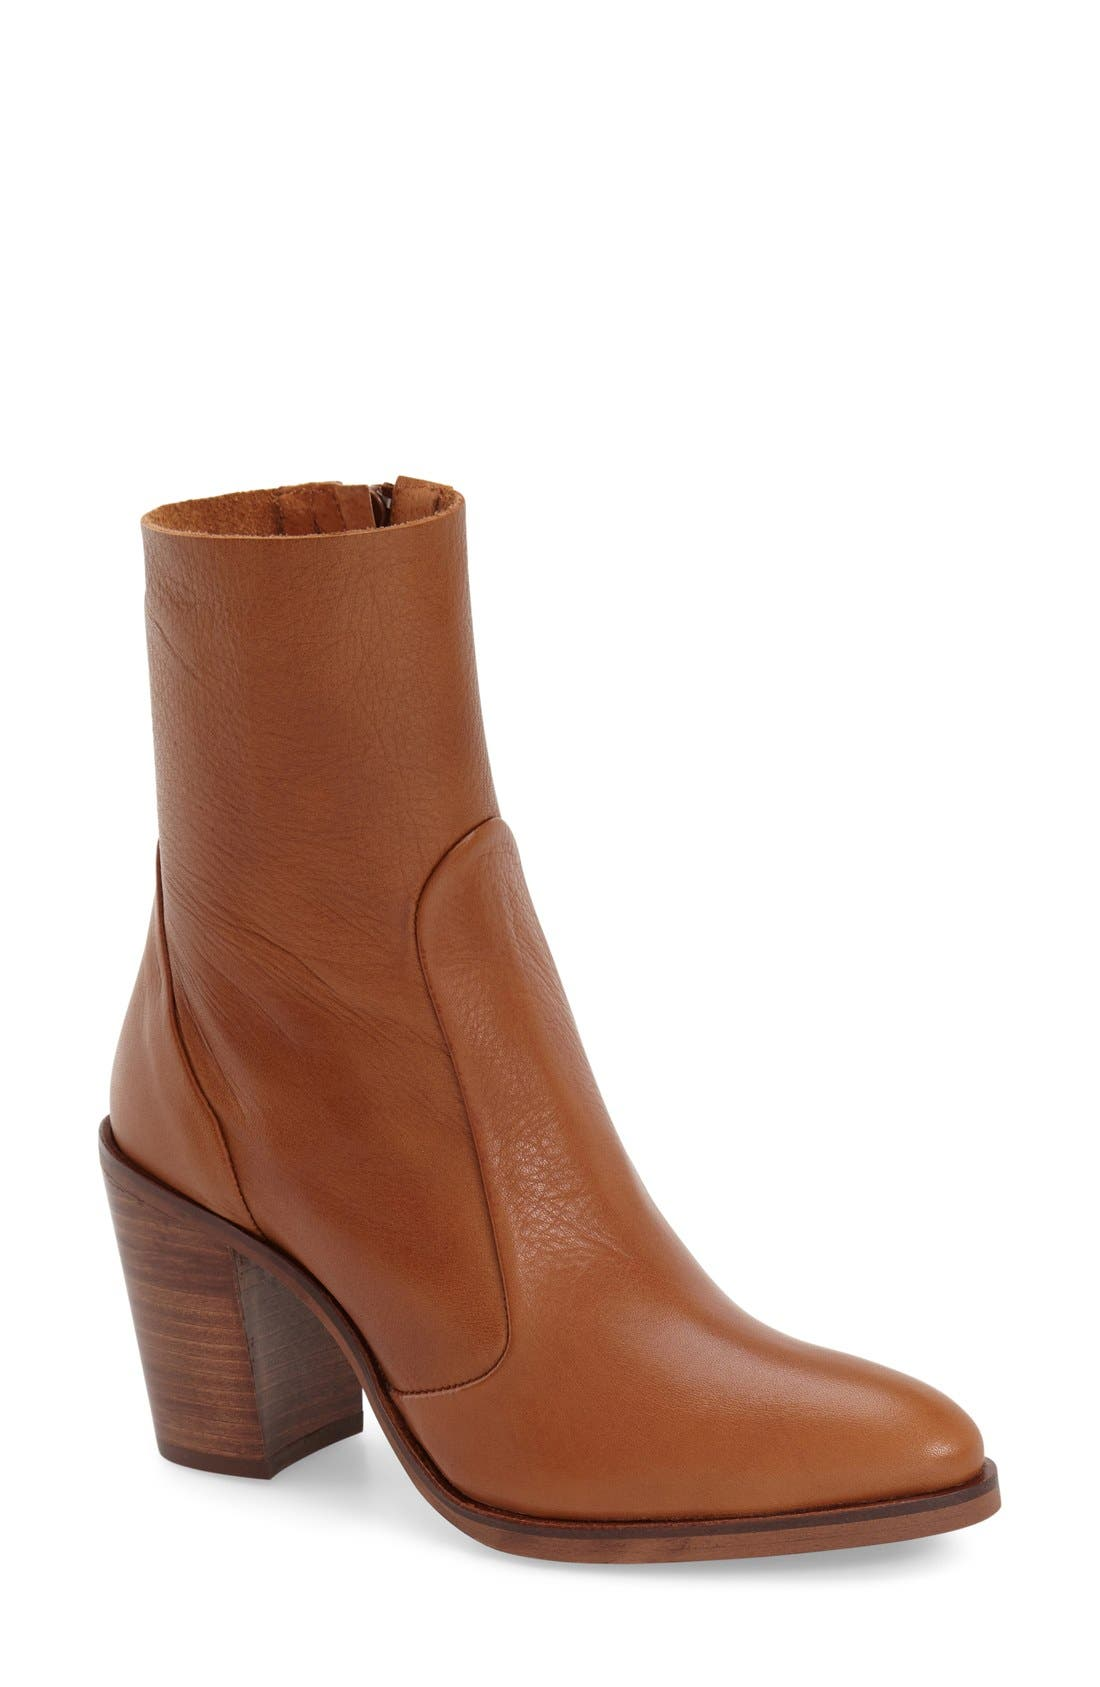 Main Image - Topshop 'Magnificent' Bootie (Women)